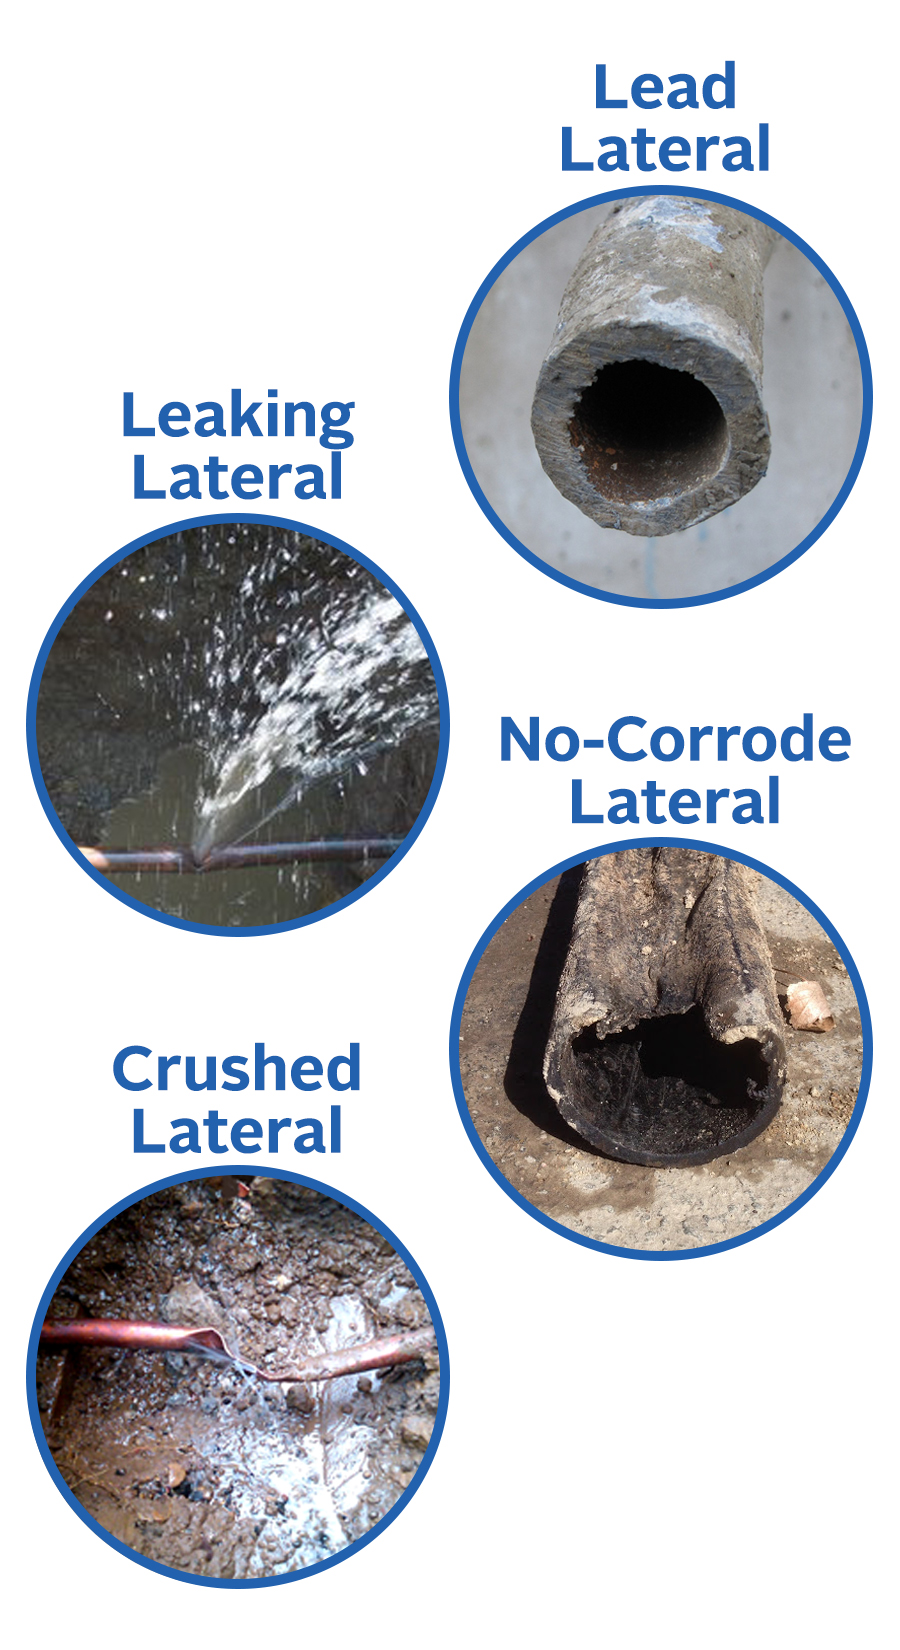 Images of lead pipe, deteriorated no-corrode pipe, a leaking lateral, and a crushed pipe.